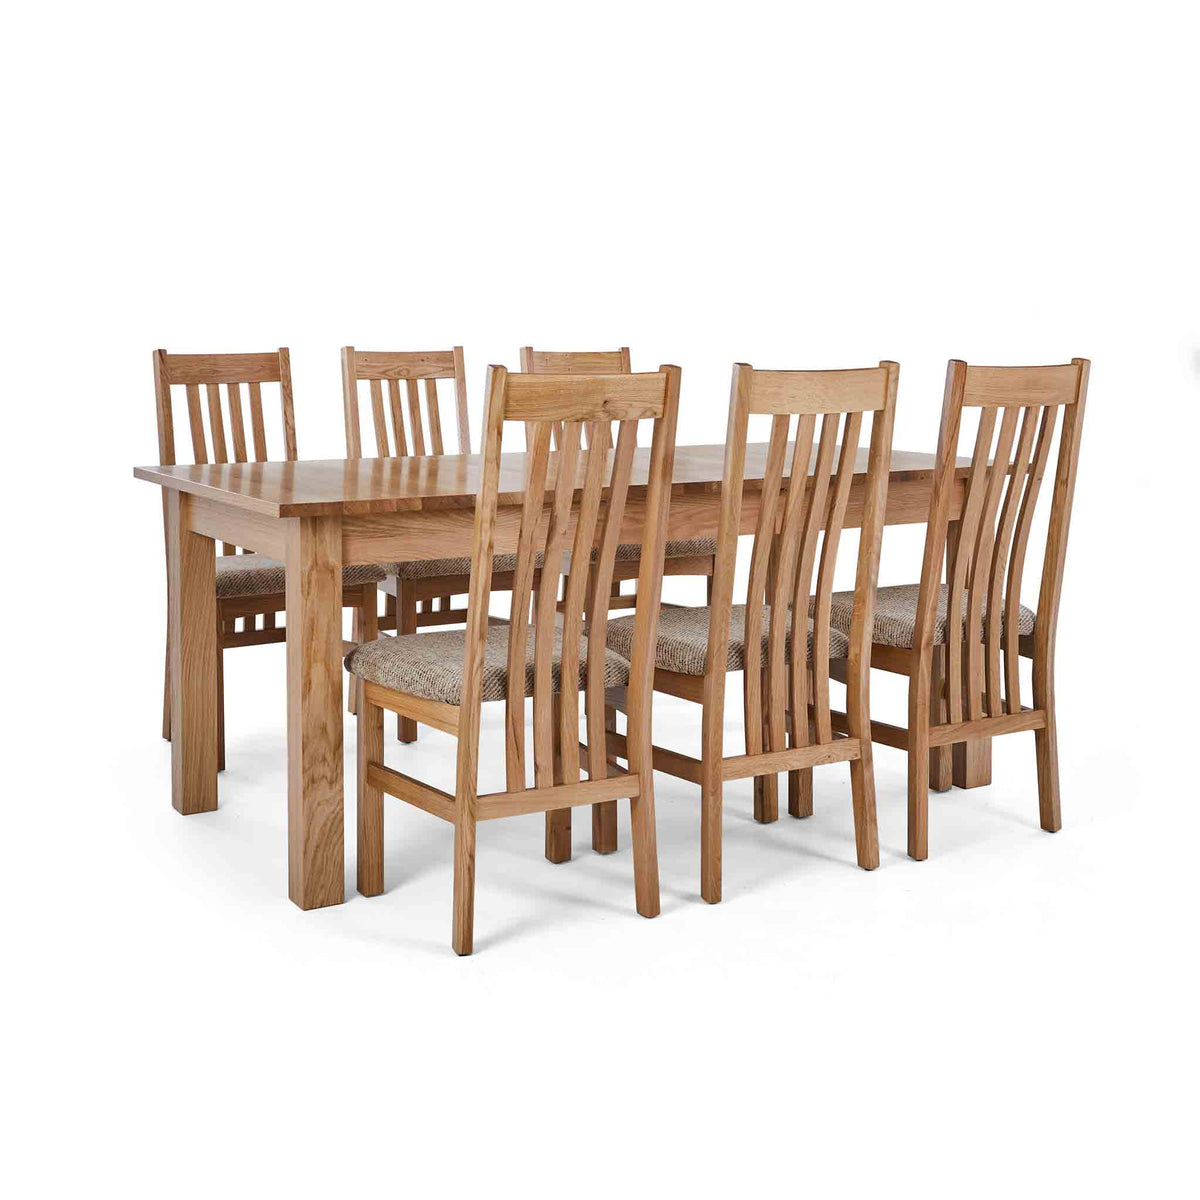 6 Wheat Slatted Chairs with the Falmouth Oak Large Extending Dining Table